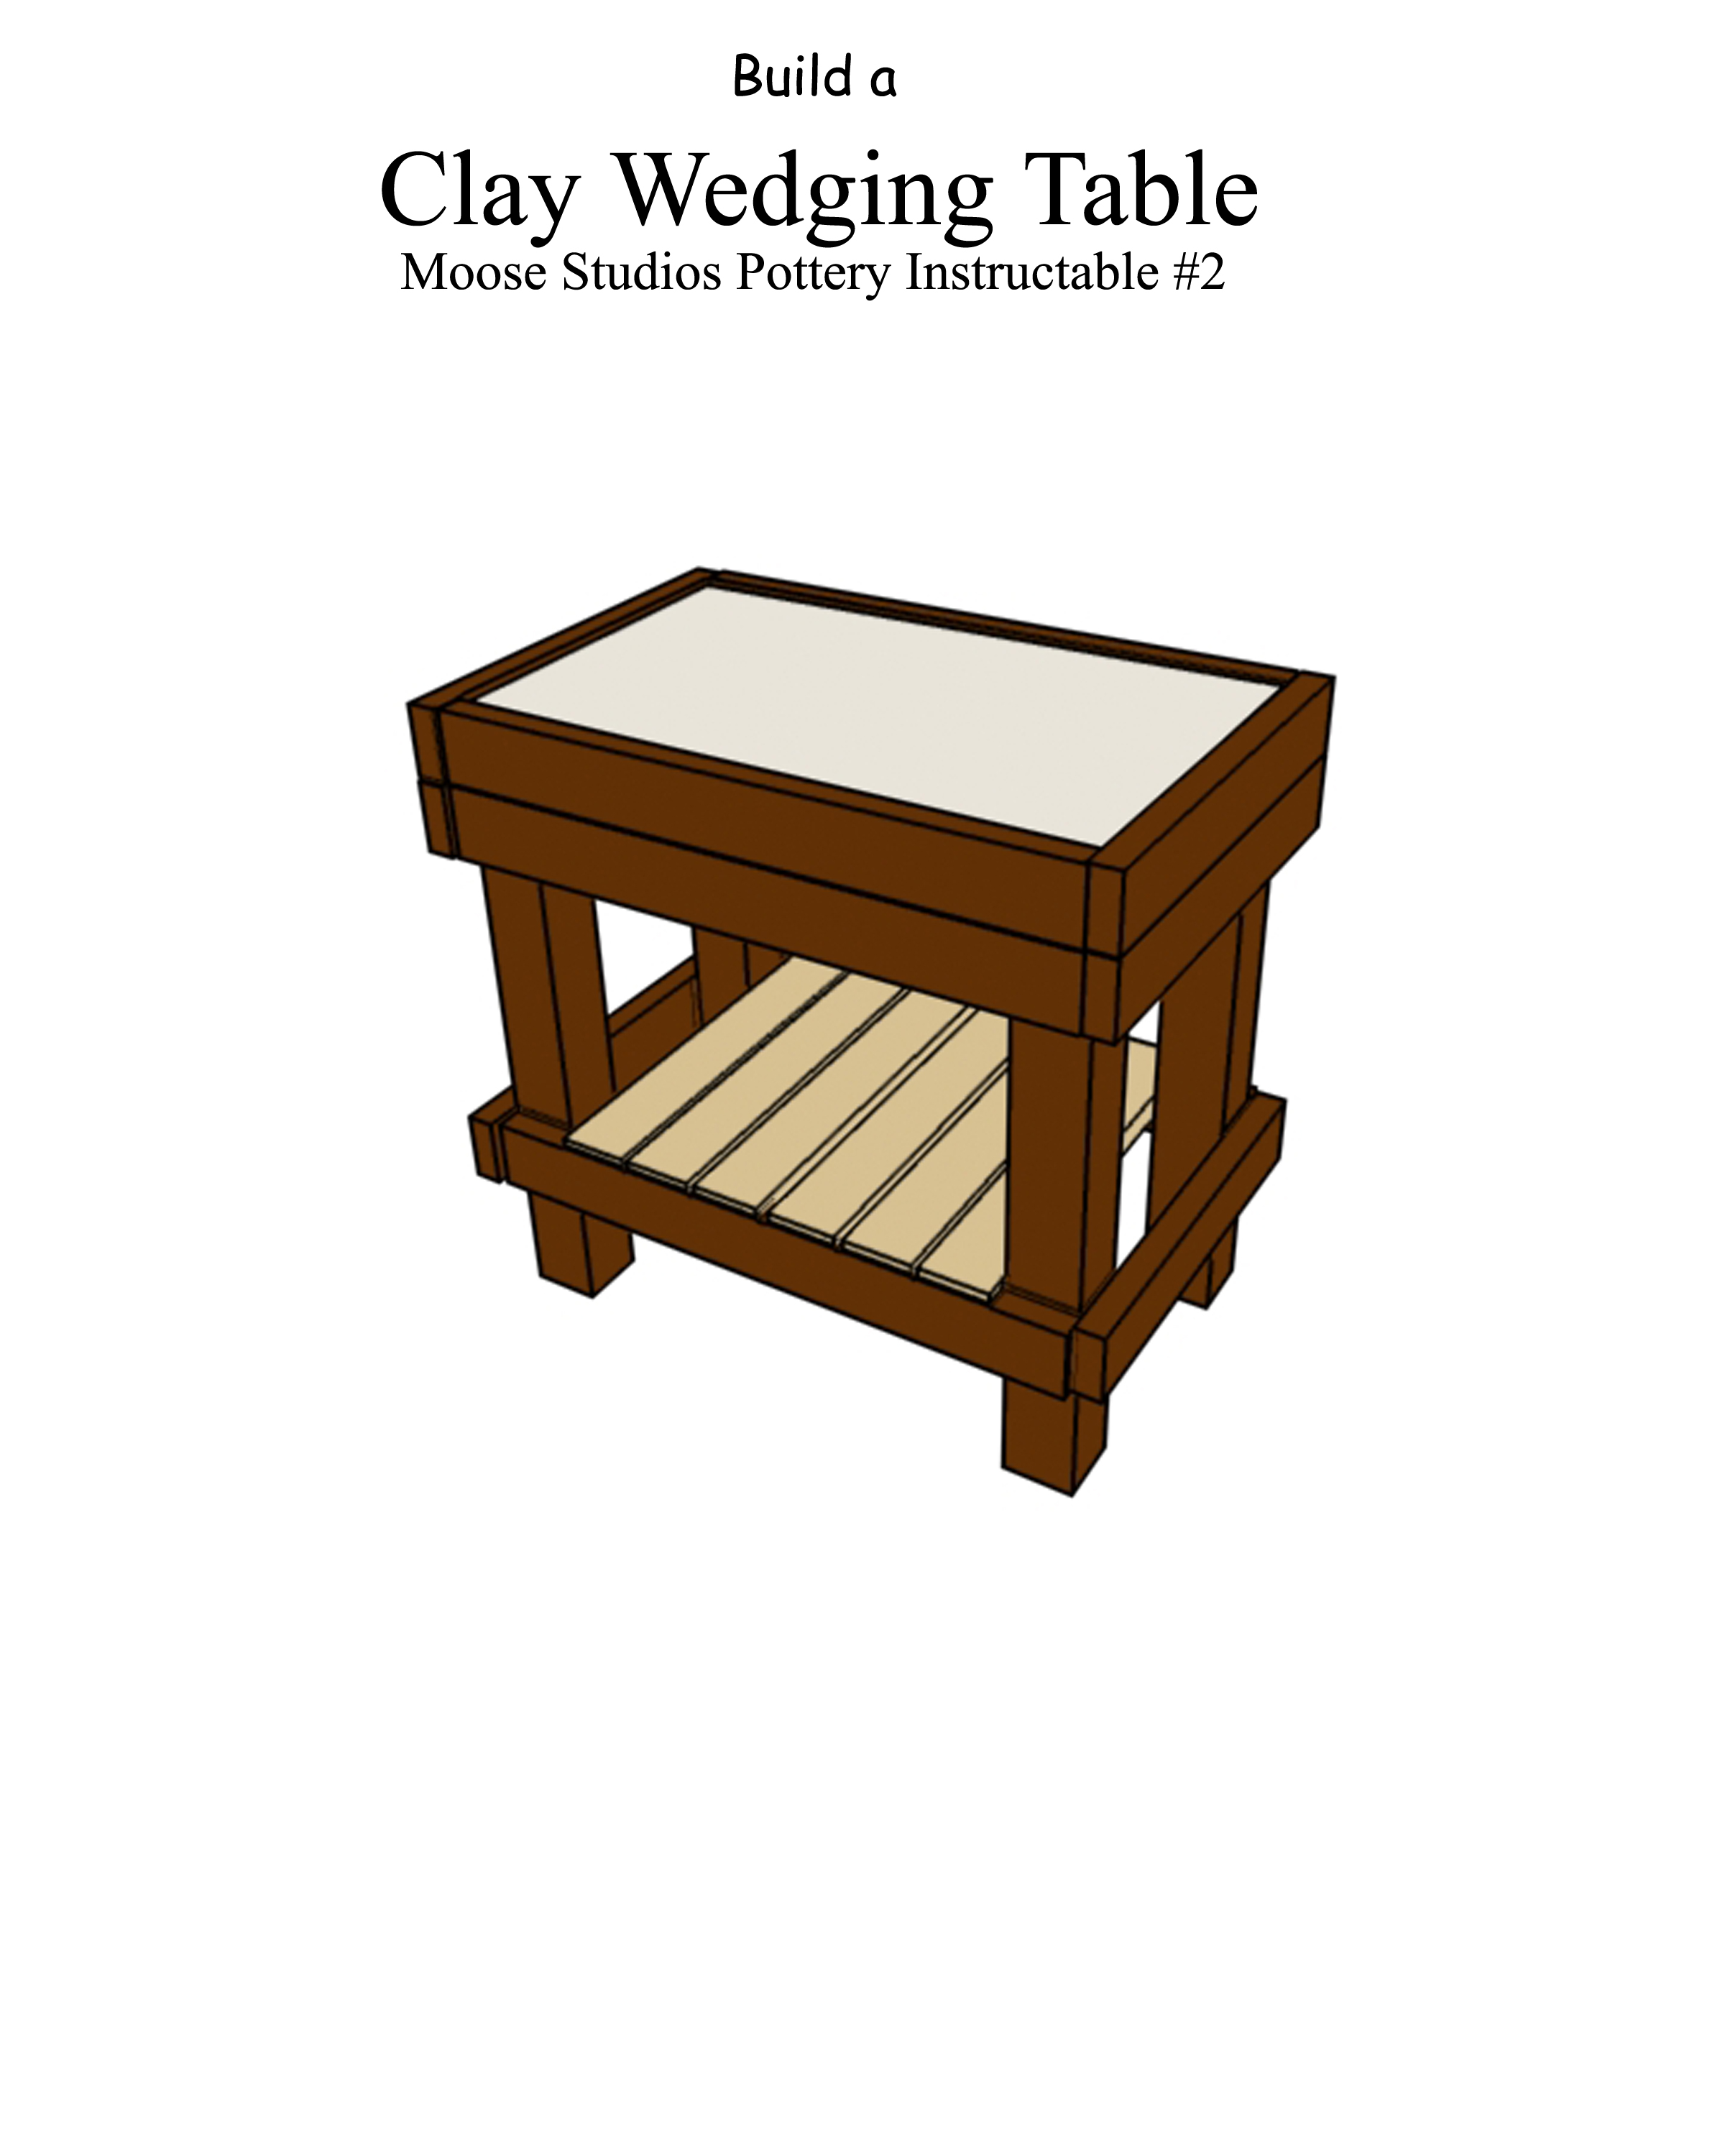 Build a Country Pottery Clay Wedging Table